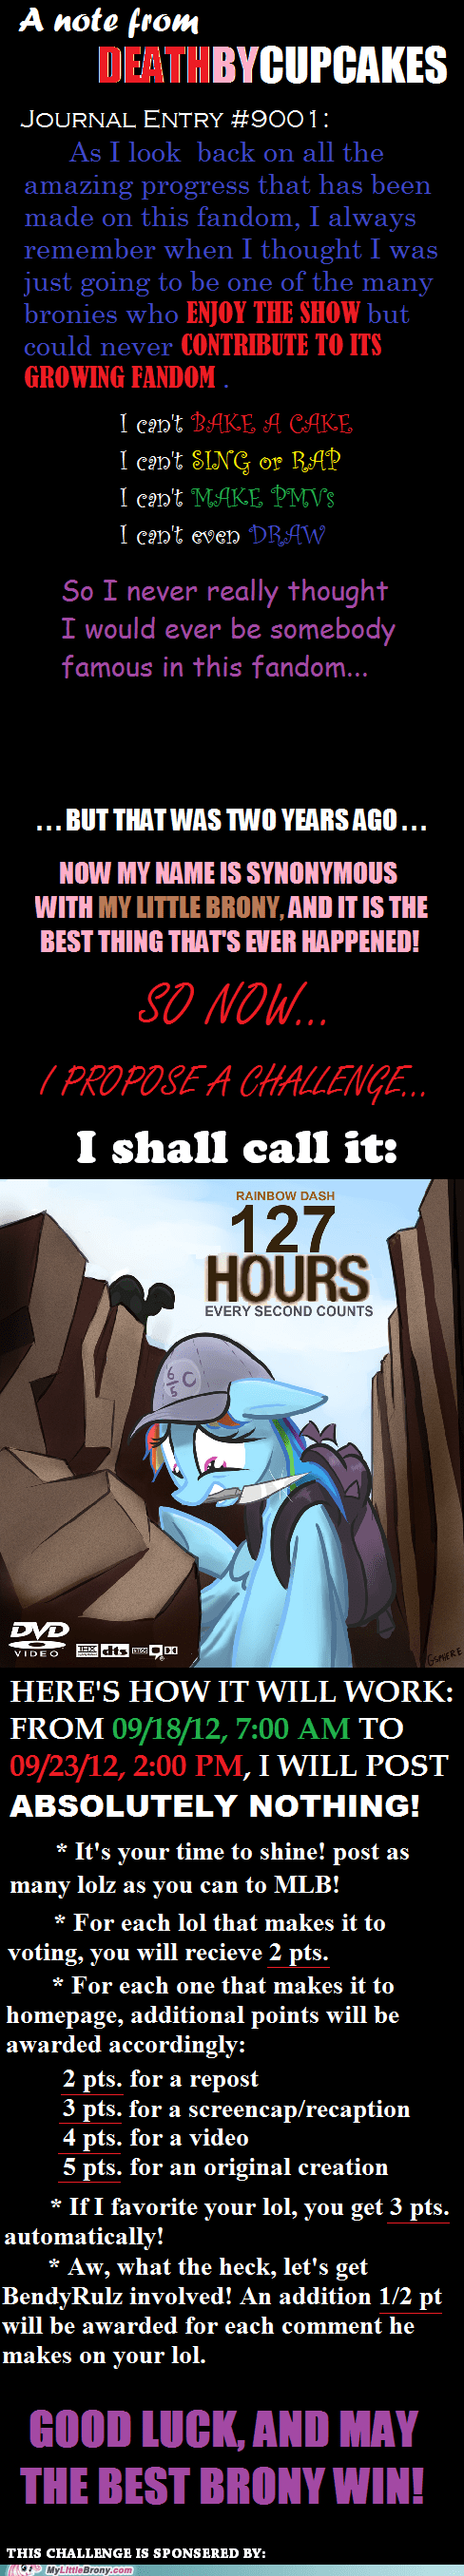 Challenge Accepted deathbycupcakes good luck is this real life my little brony What is happening - 6593408256